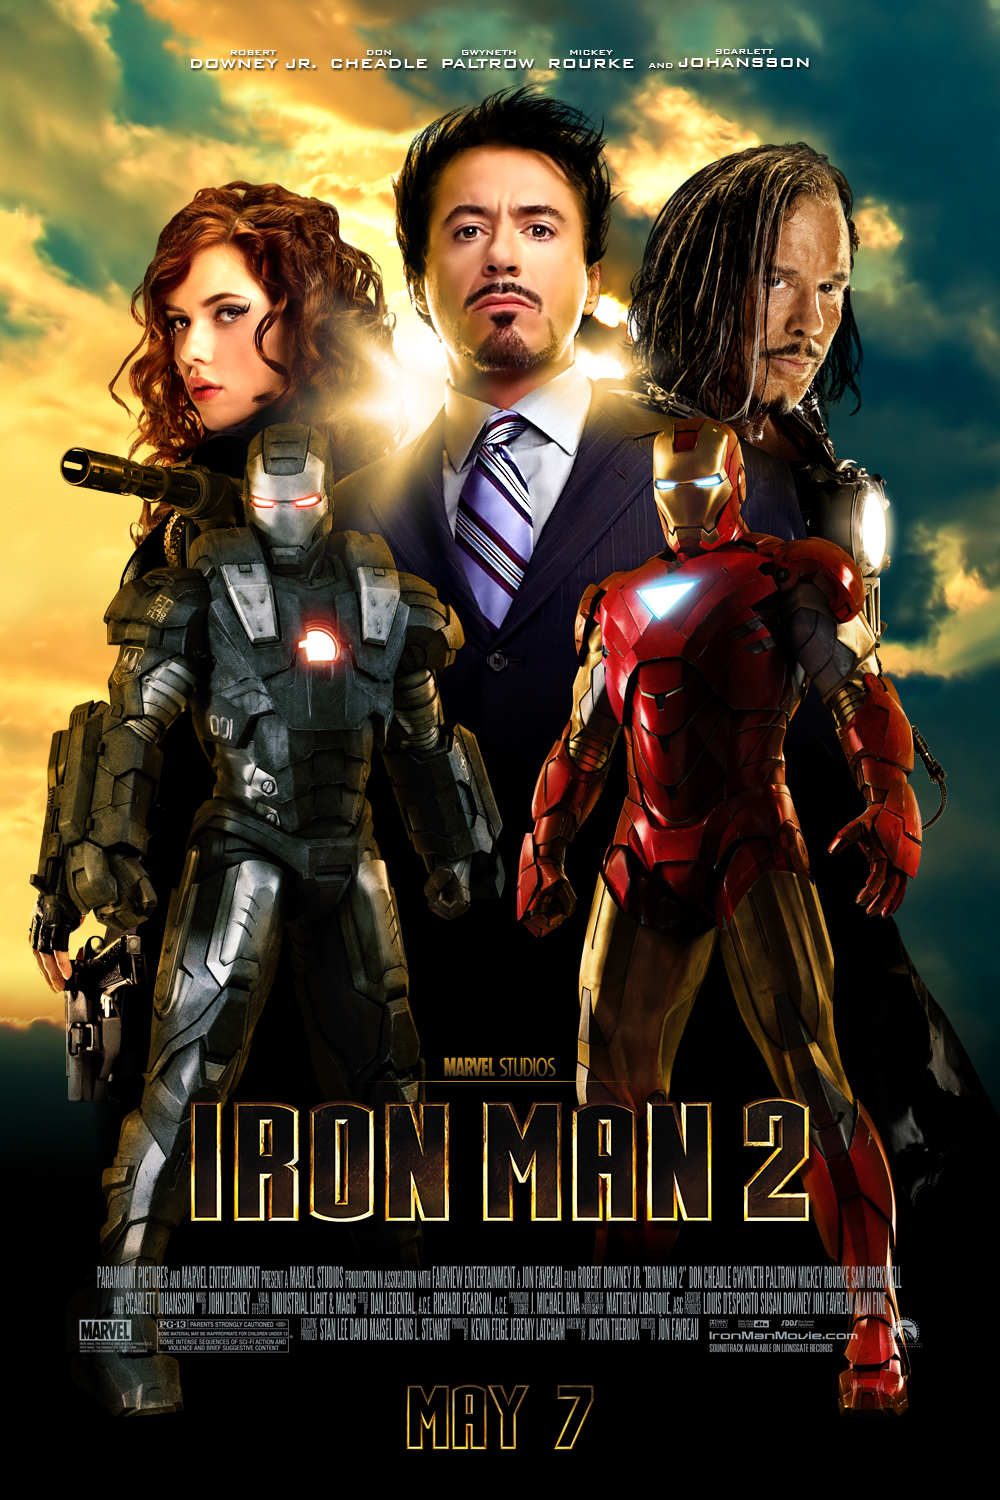 Iron Man 2 Theatrical Poster By J K K S On Deviantart